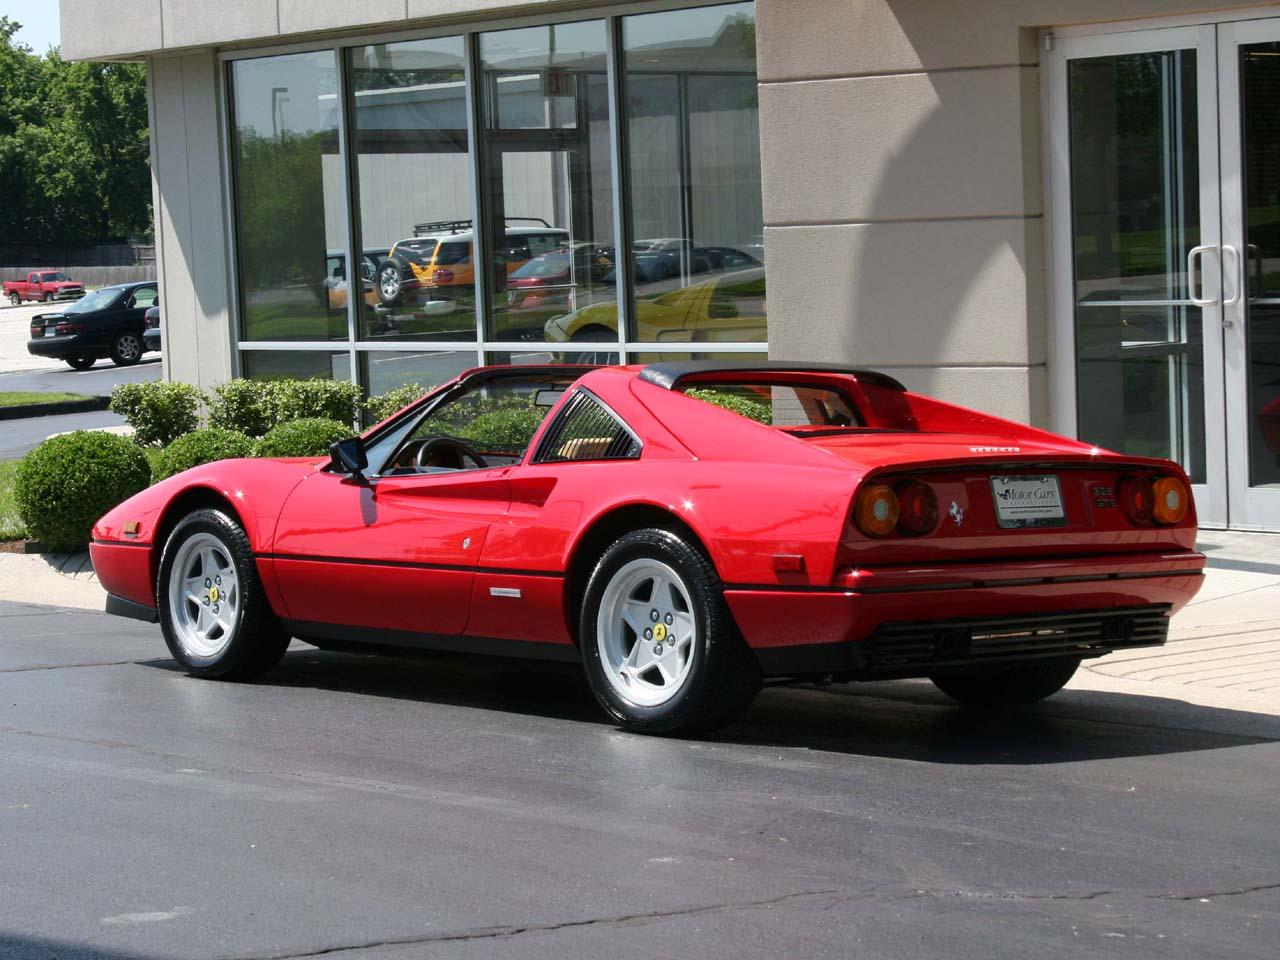 ferrari 328 technical details history photos on better. Black Bedroom Furniture Sets. Home Design Ideas